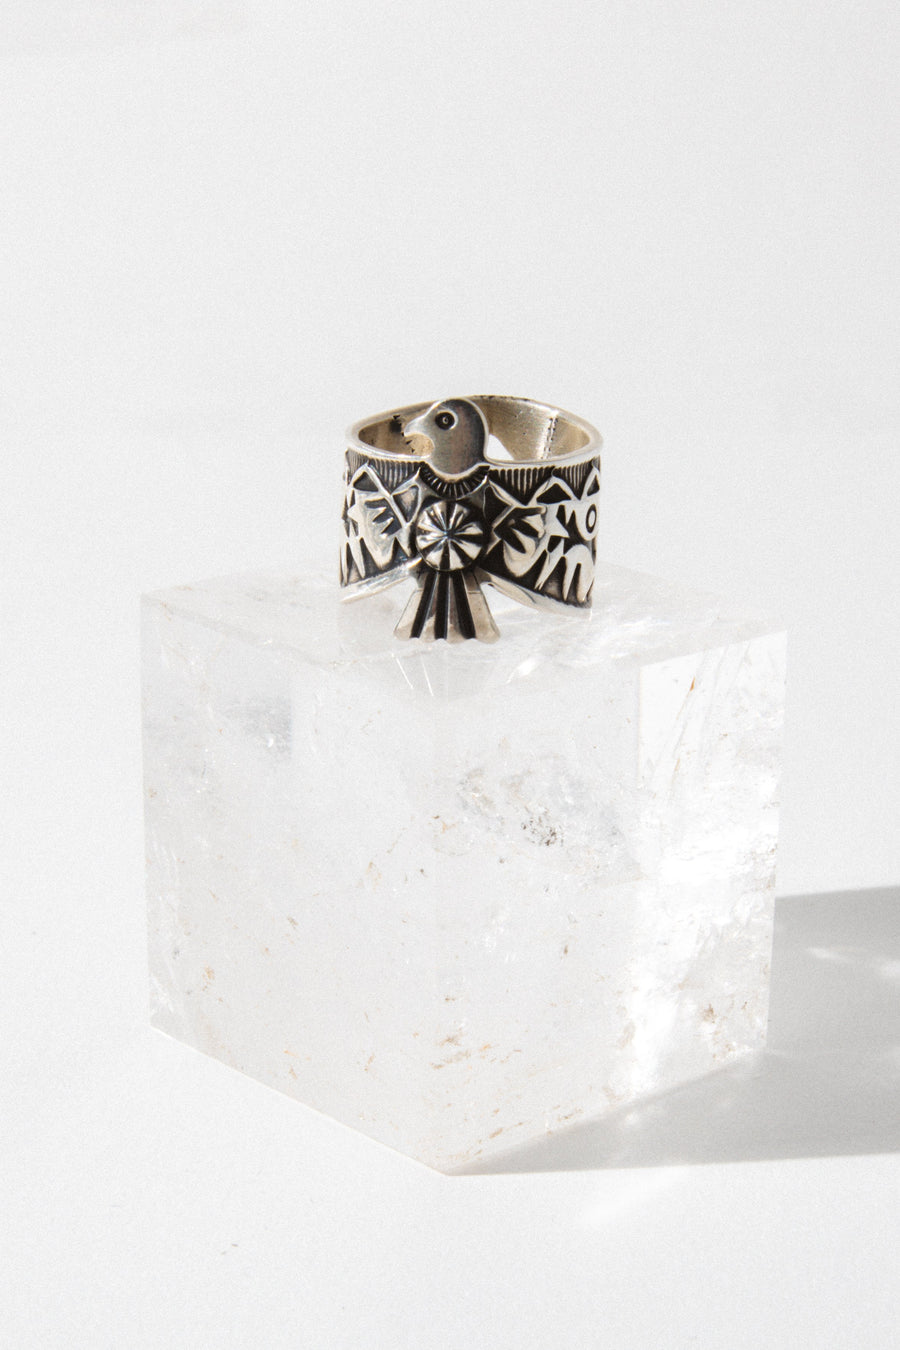 Sunwest Jewelry Silver / US 8 Totem Native American Ring